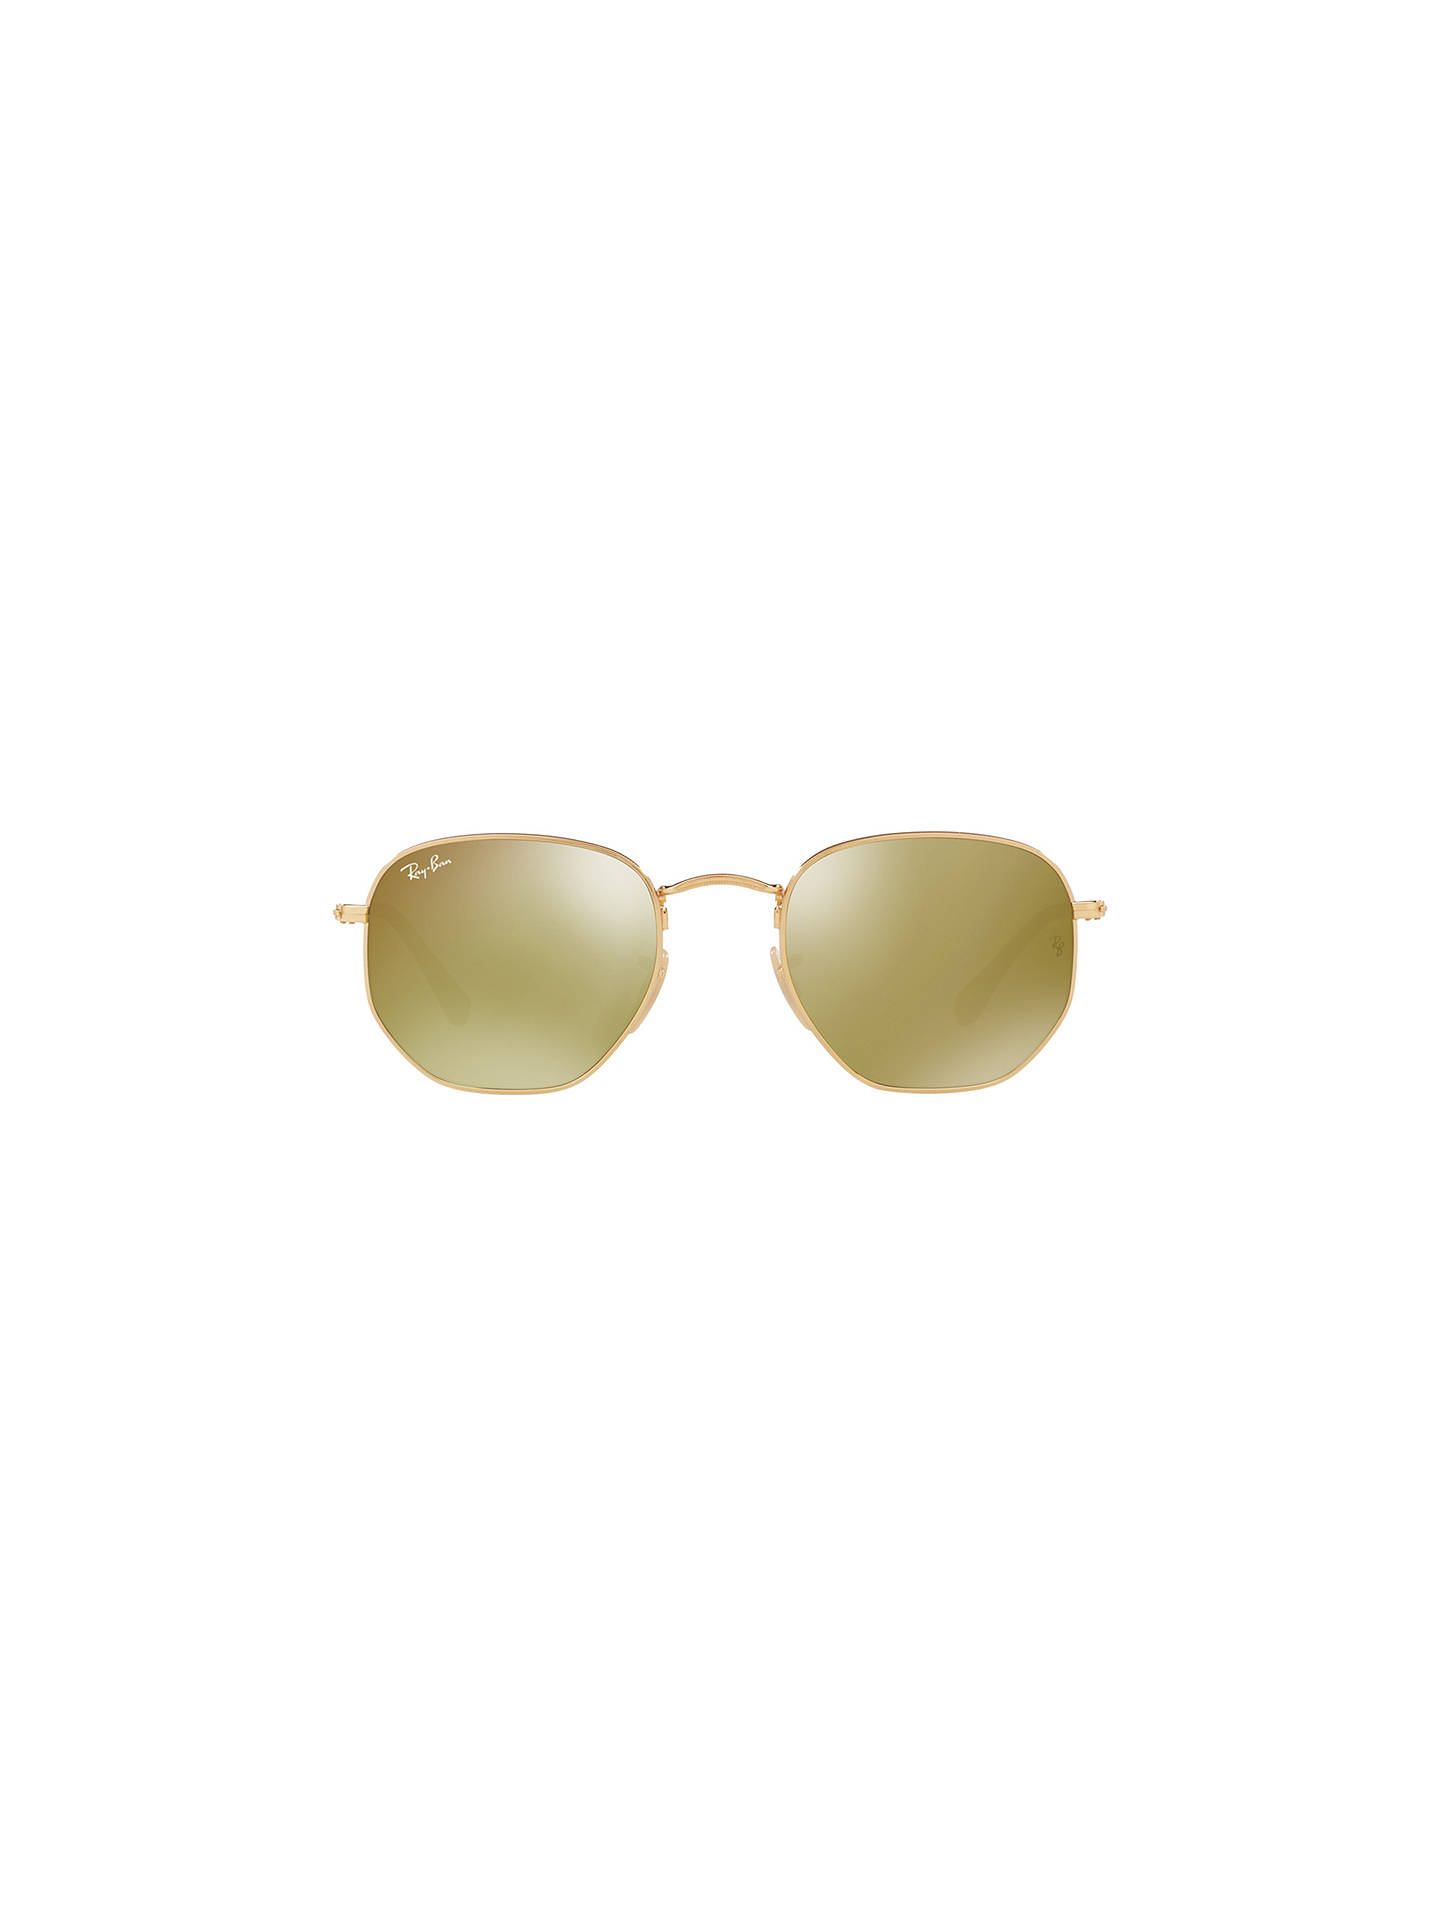 Buy Ray-Ban RB3548N Hexagonal Sunglasses, Gold/Yellow Flash Online at johnlewis.com